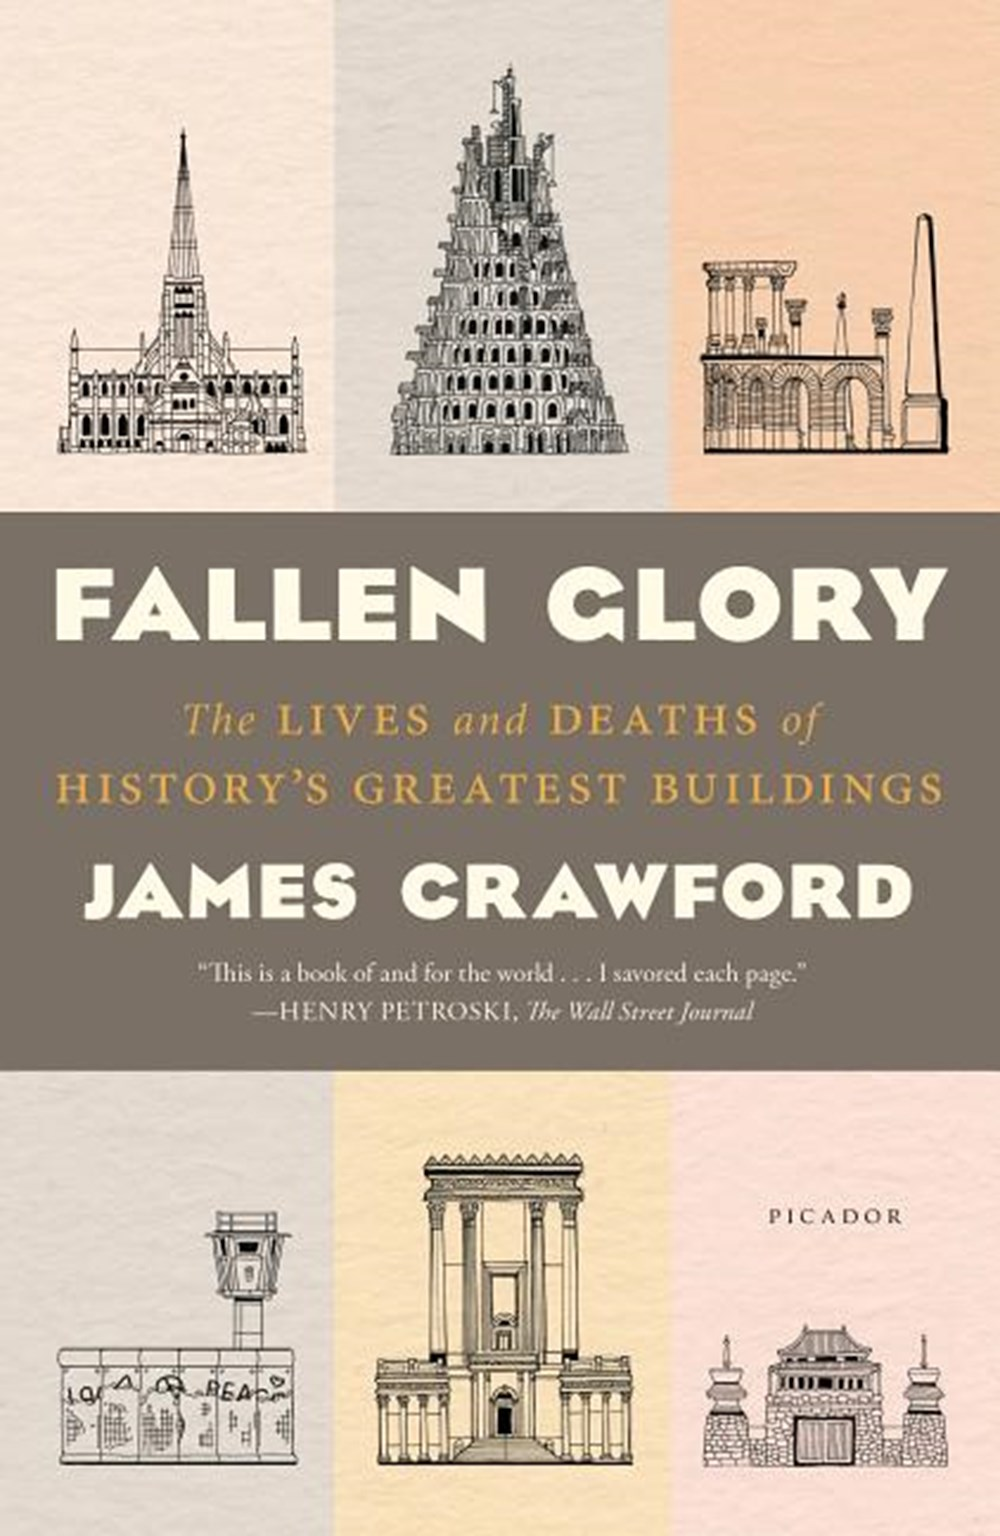 Fallen Glory The Lives and Deaths of History's Greatest Buildings